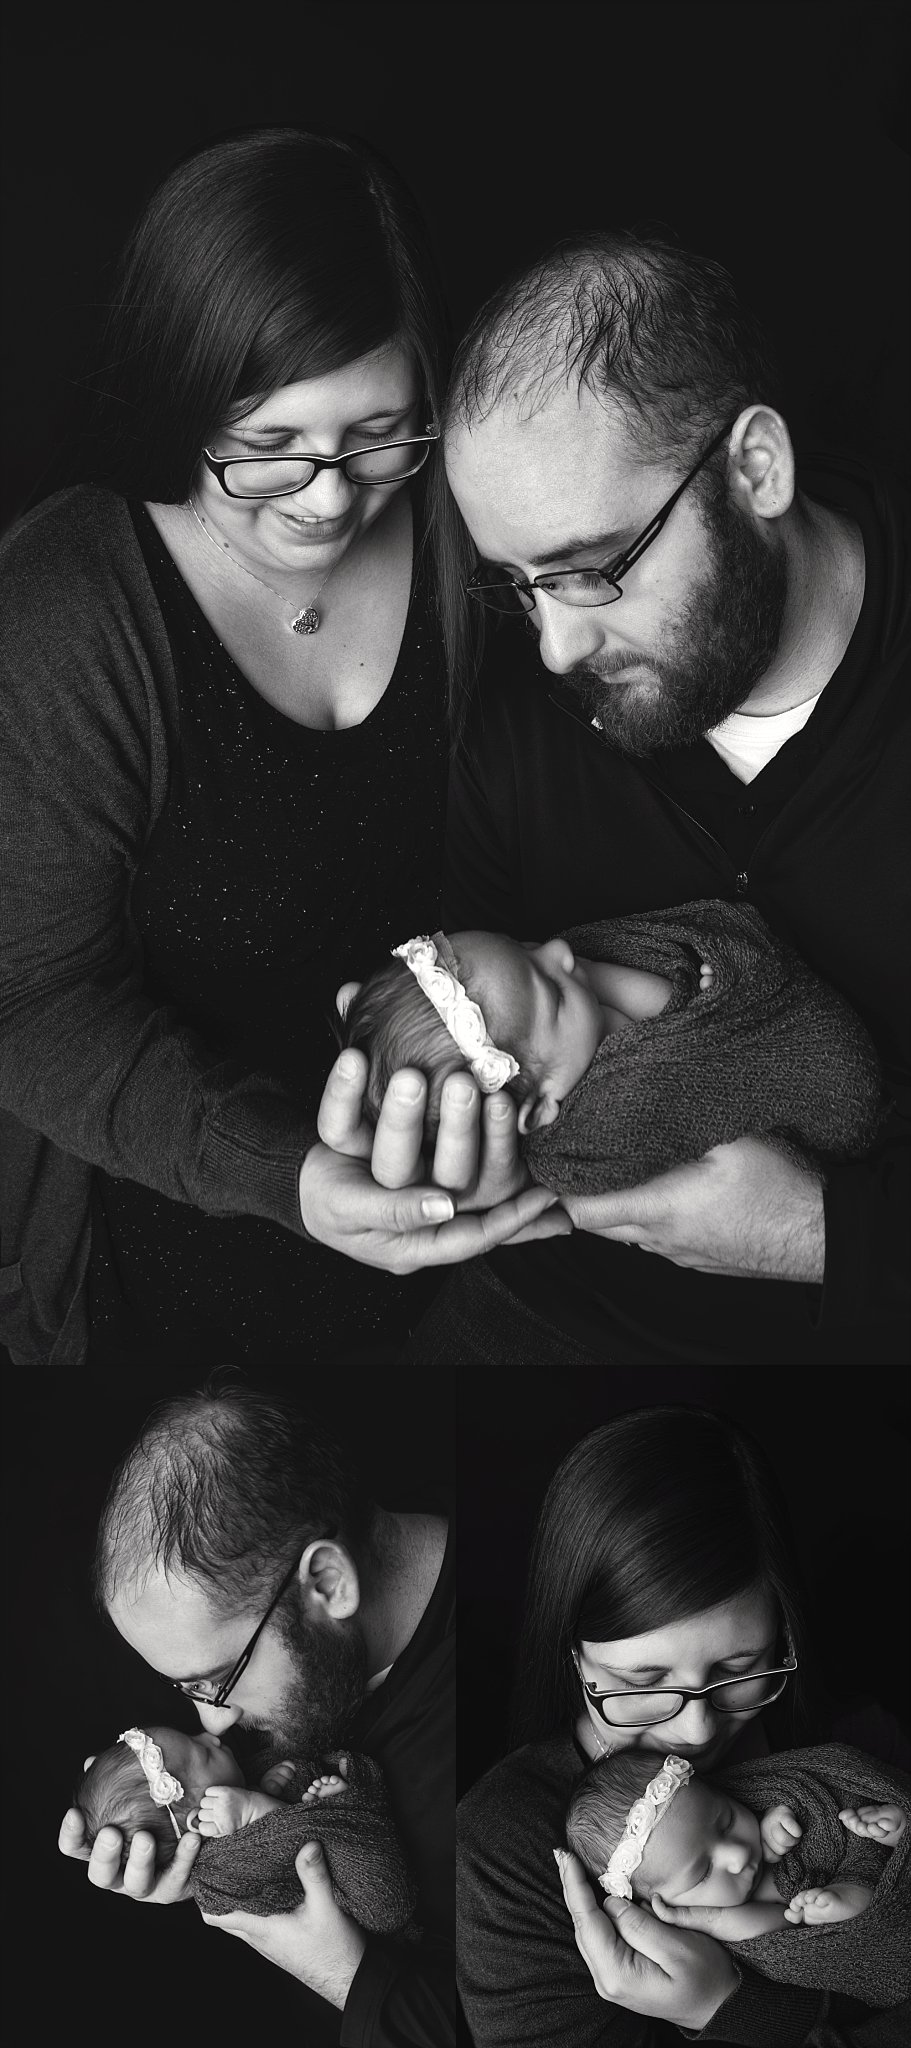 st-louis-newborn-photographer-baby-girl-with-mom-and-dad-blcak-and-white-collage.jpg